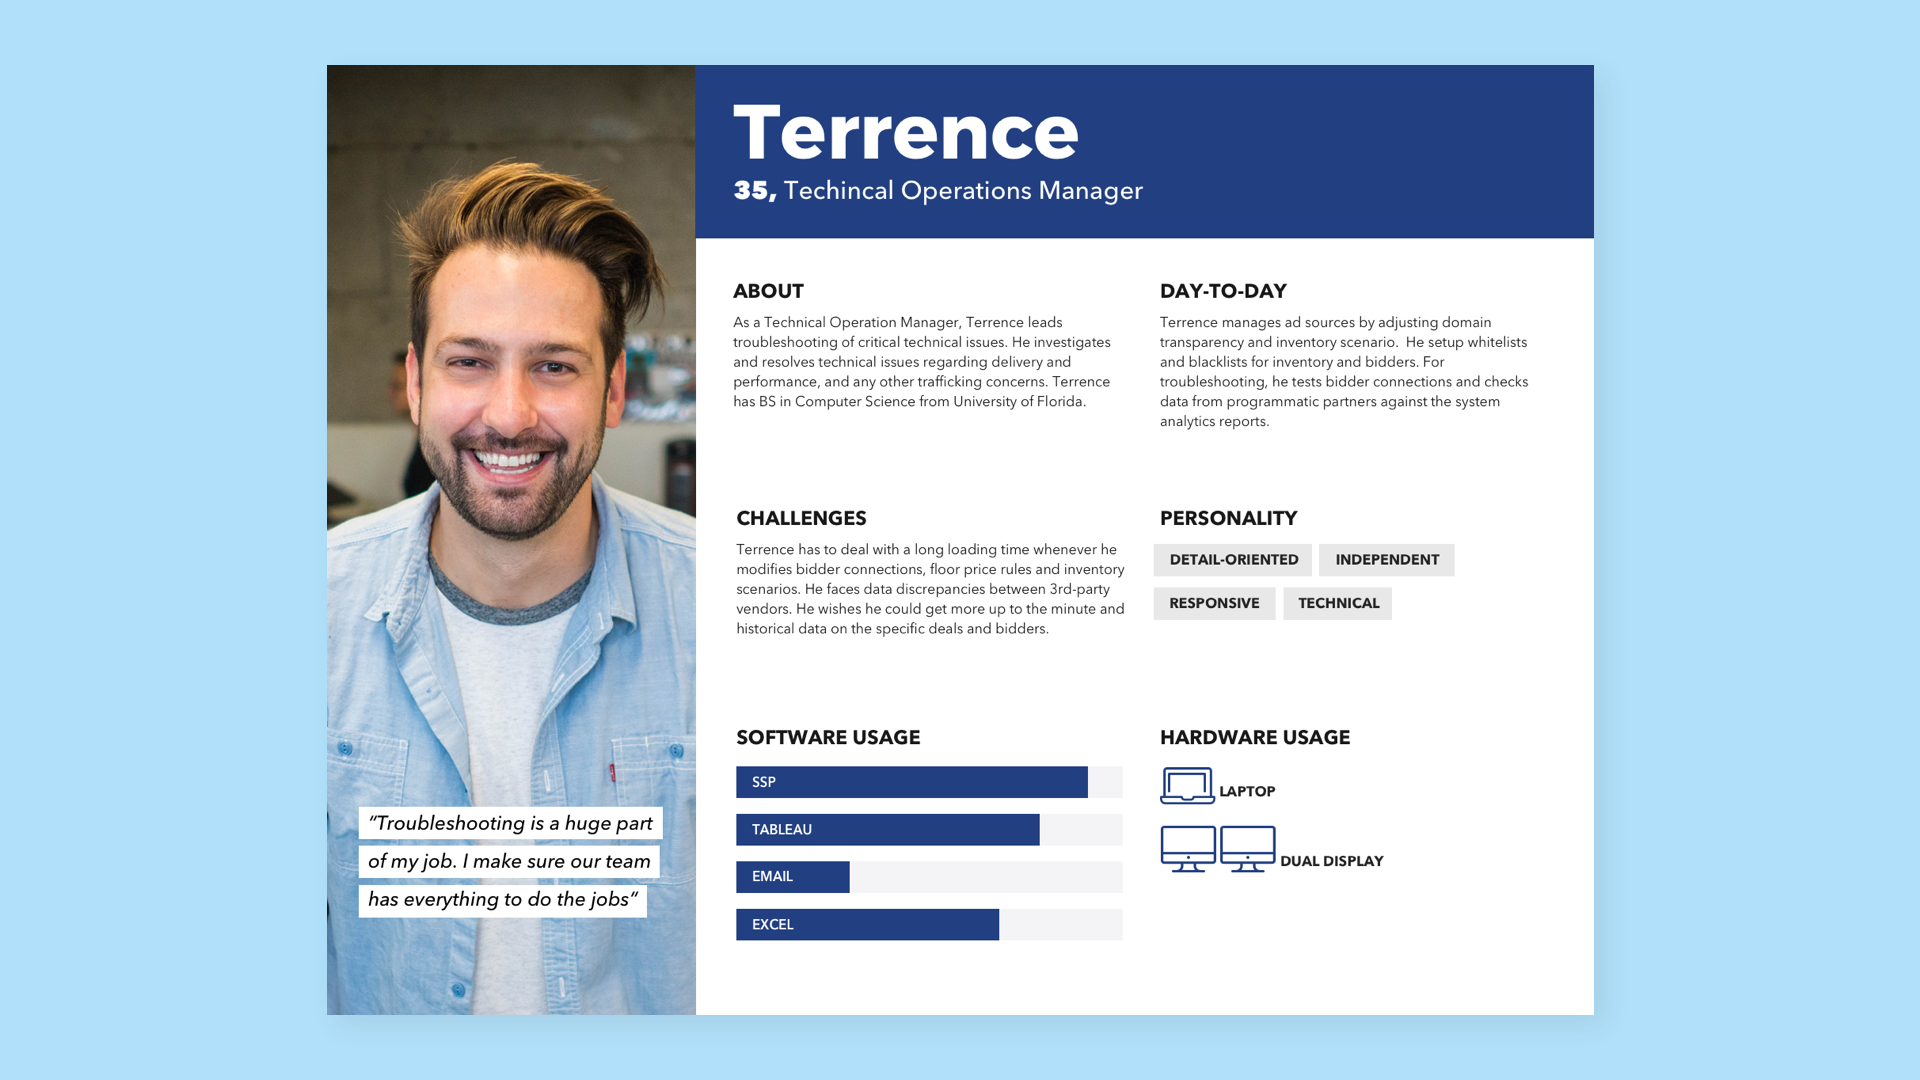 Personas-Terrence-1